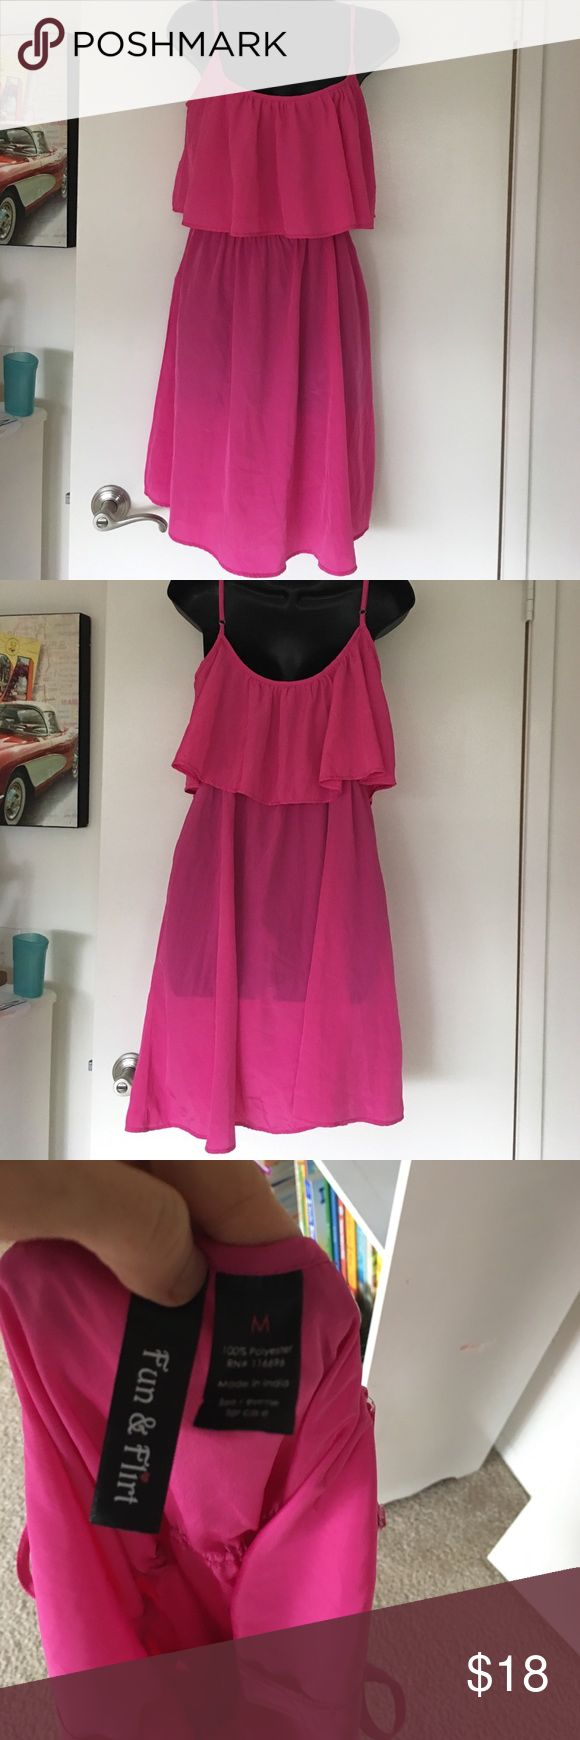 Dress🎉🎉WEEKEND SALE🎉🎉 So pretty and flirty. Has a very 70's look. Pink and wore once for my sons birthday. Spring or summer appropriate. Size is medium. Dresses